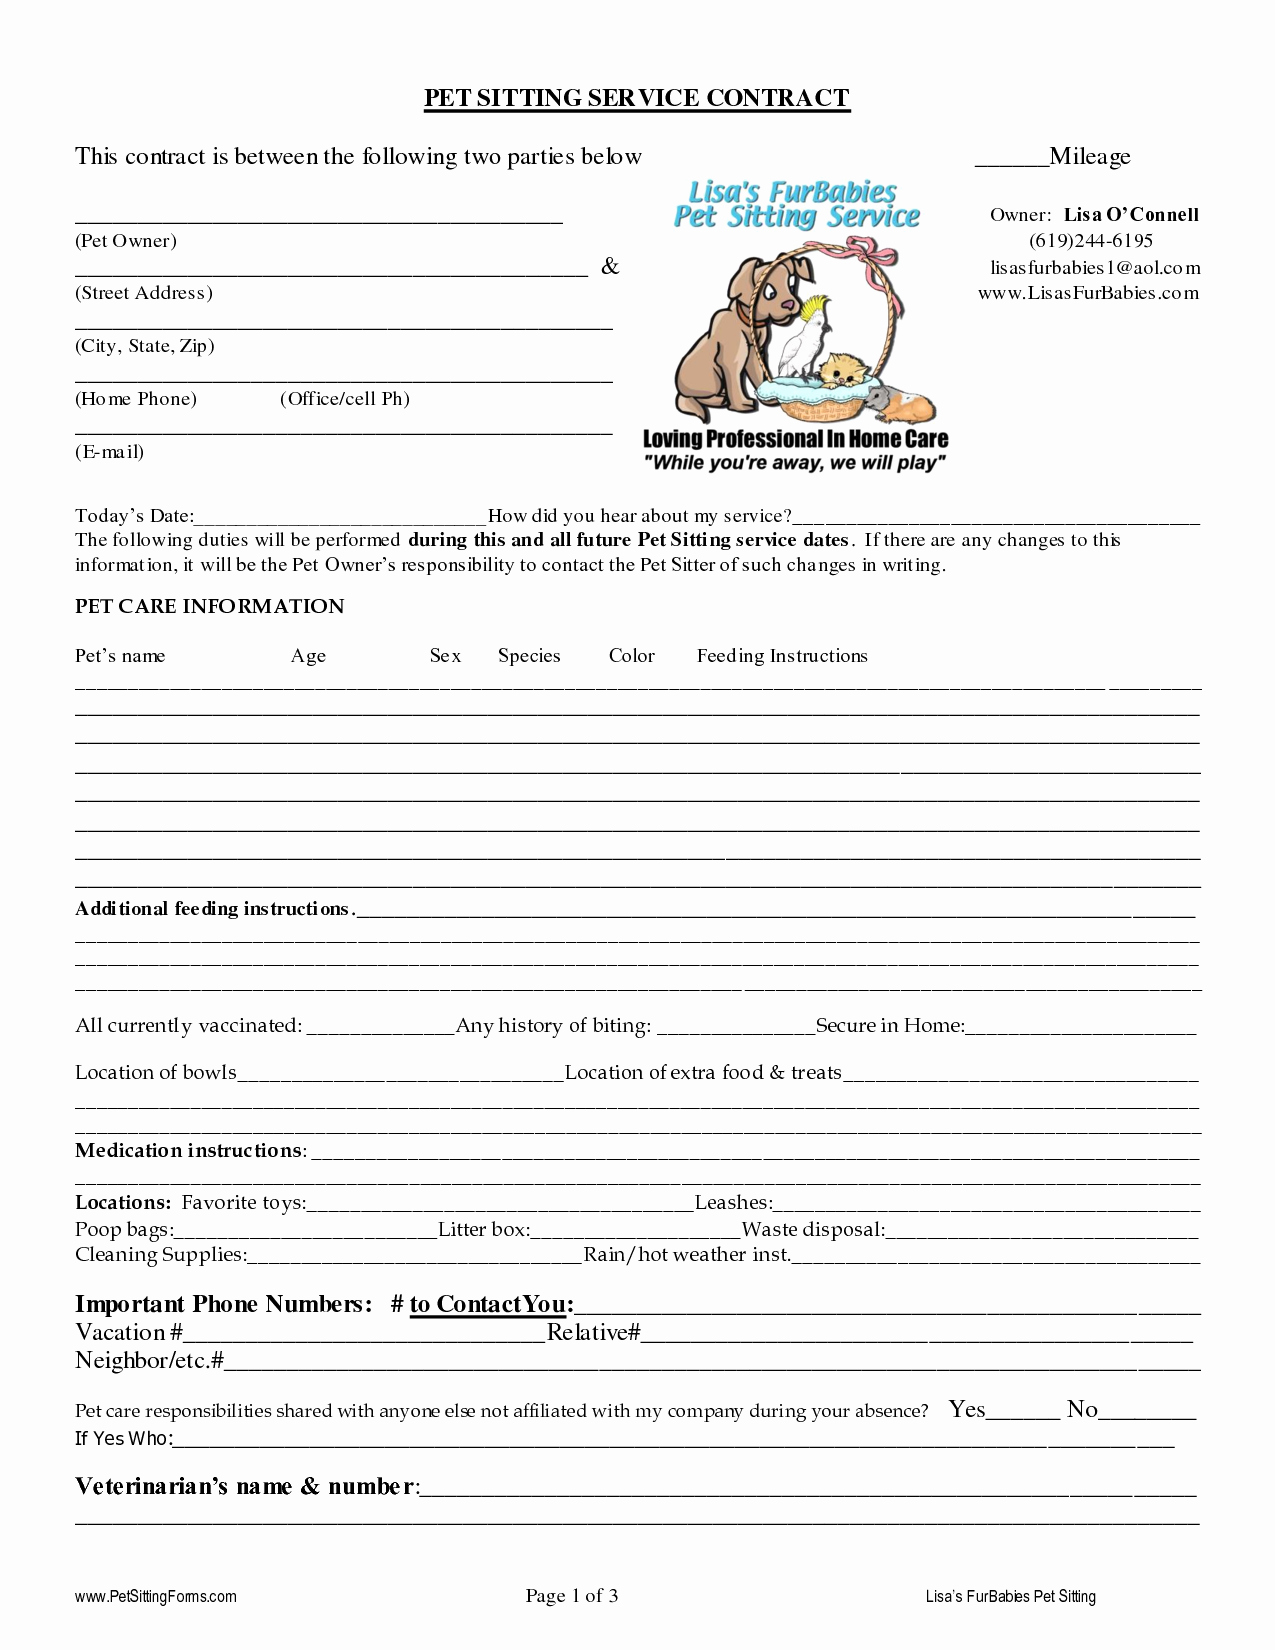 Service Dog Certificate Template Best Of Pet Sitting Contract Templates Dogs Pinterest